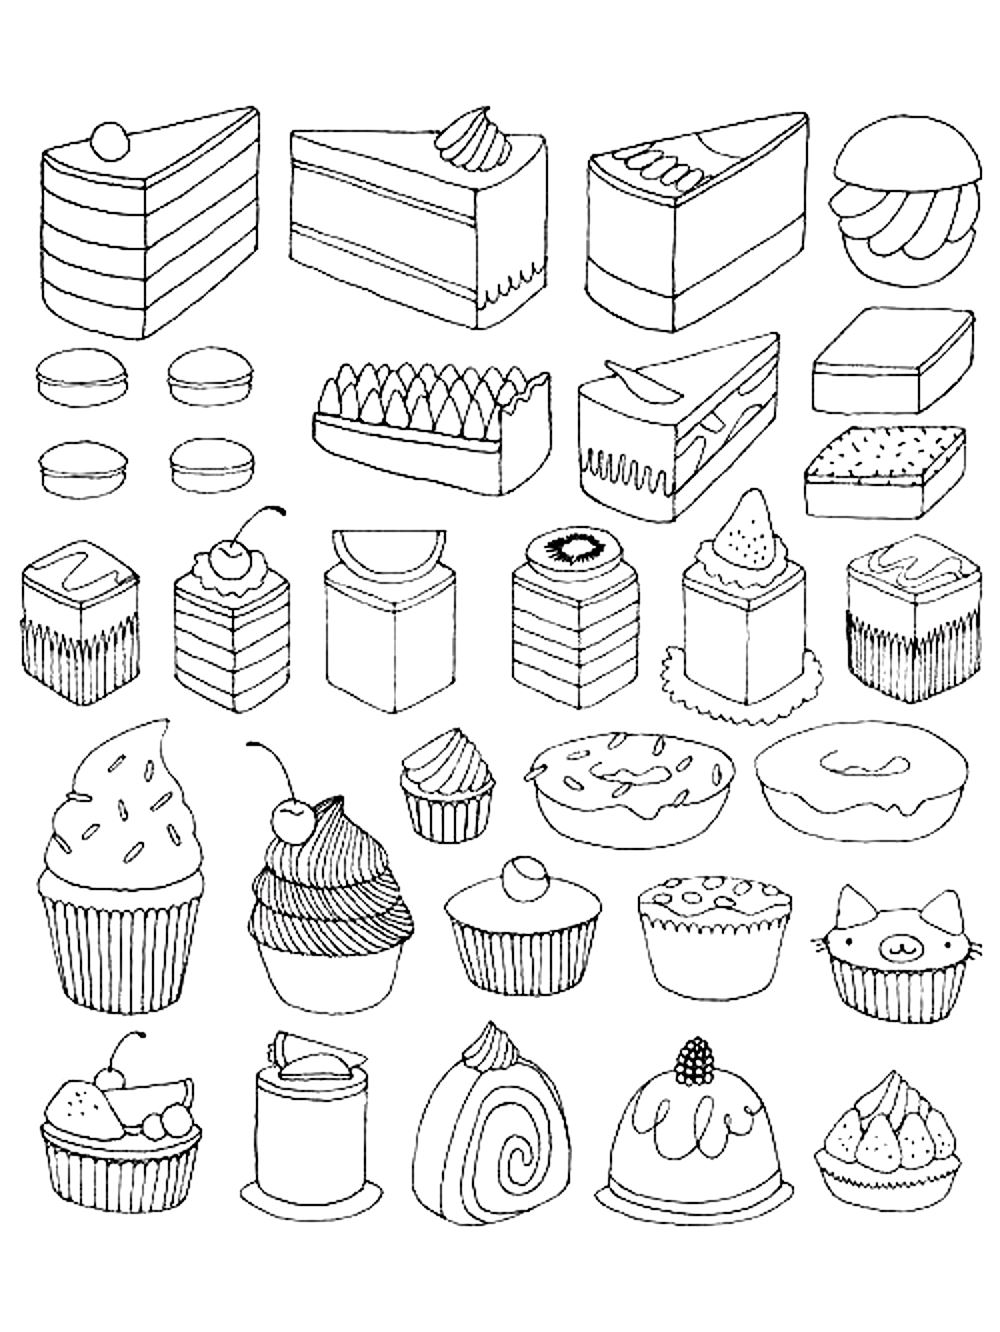 Cupcake Coloring Pages For Adults : Cup Cakes - Coloriages difficiles pour adultes : coloriage ...